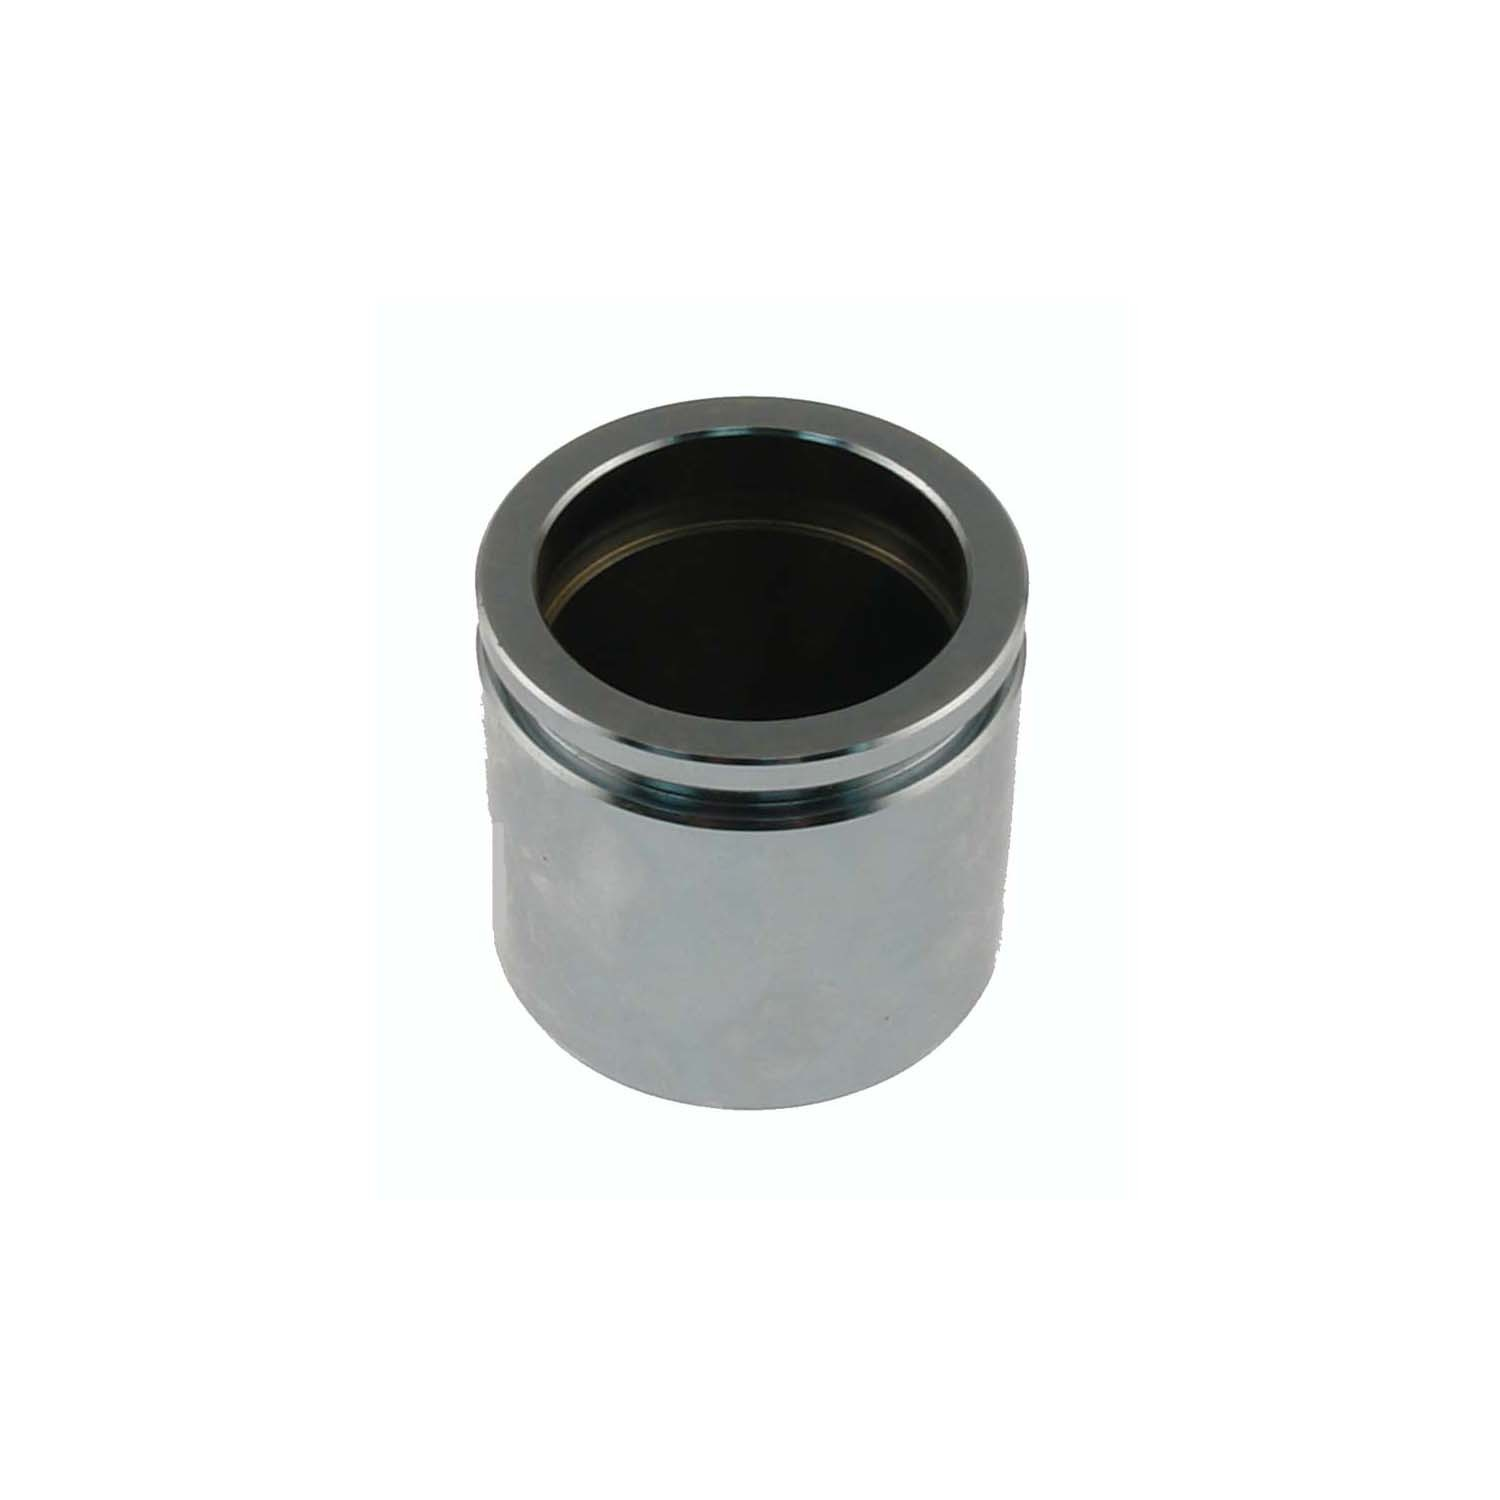 CARLSON QUALITY BRAKE PARTS - Disc Brake Caliper Piston (Front) - CRL 7787